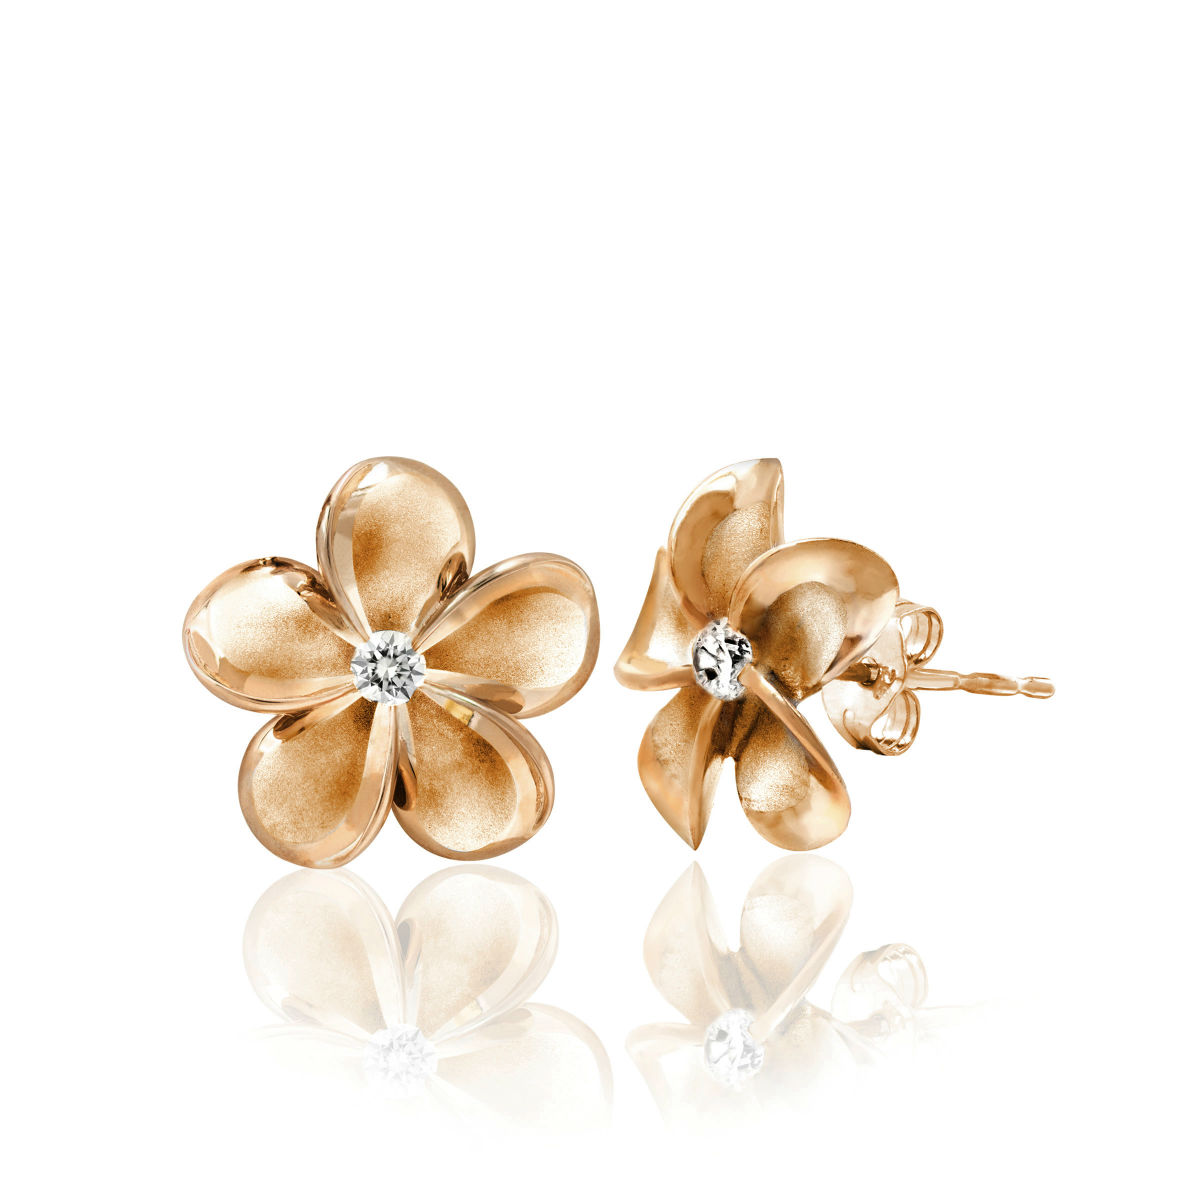 Queen Plumeria Diamond Stud Earrings 14K Rose Gold